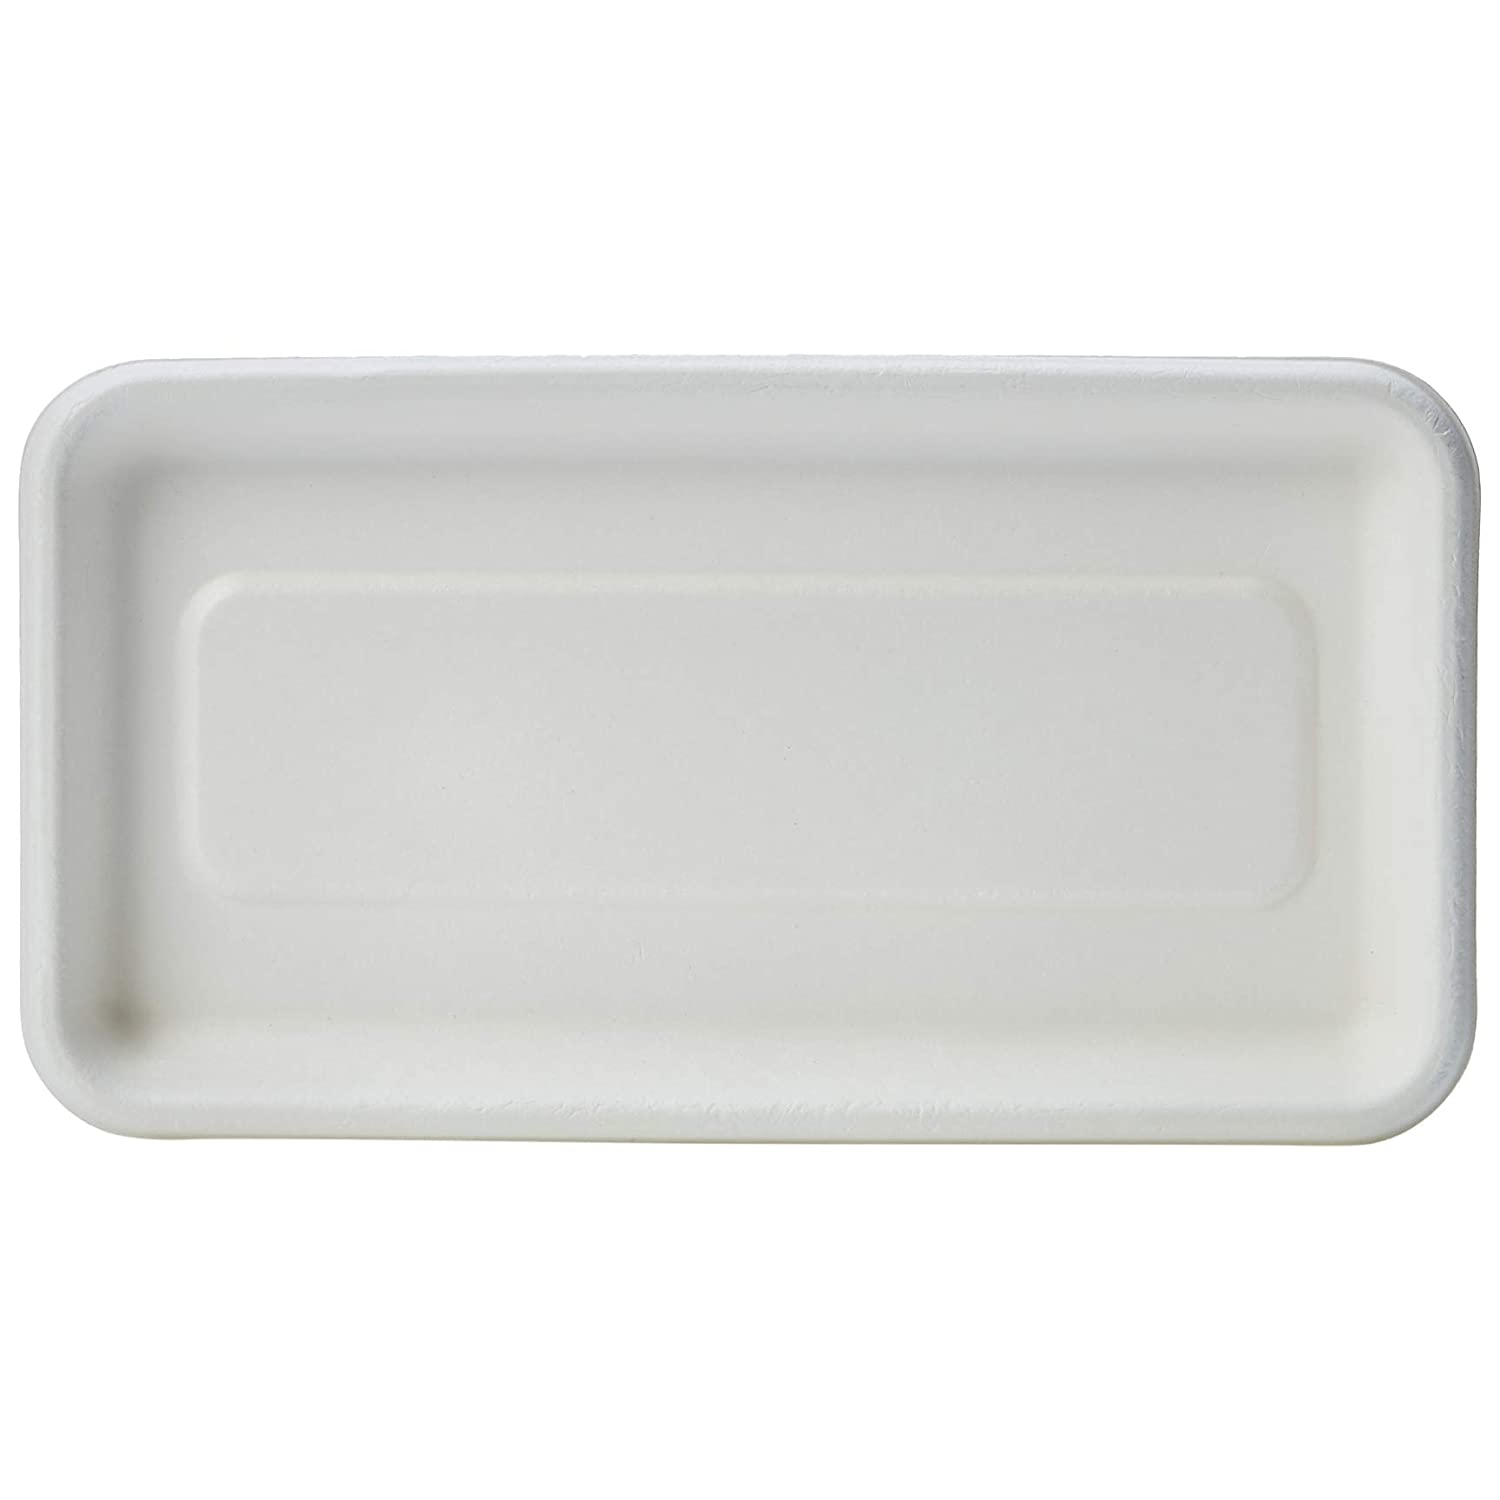 AmazonBasics Compostable Mini Tray, 8.3 x 4.5 x 0.6 Inches, 500 Trays